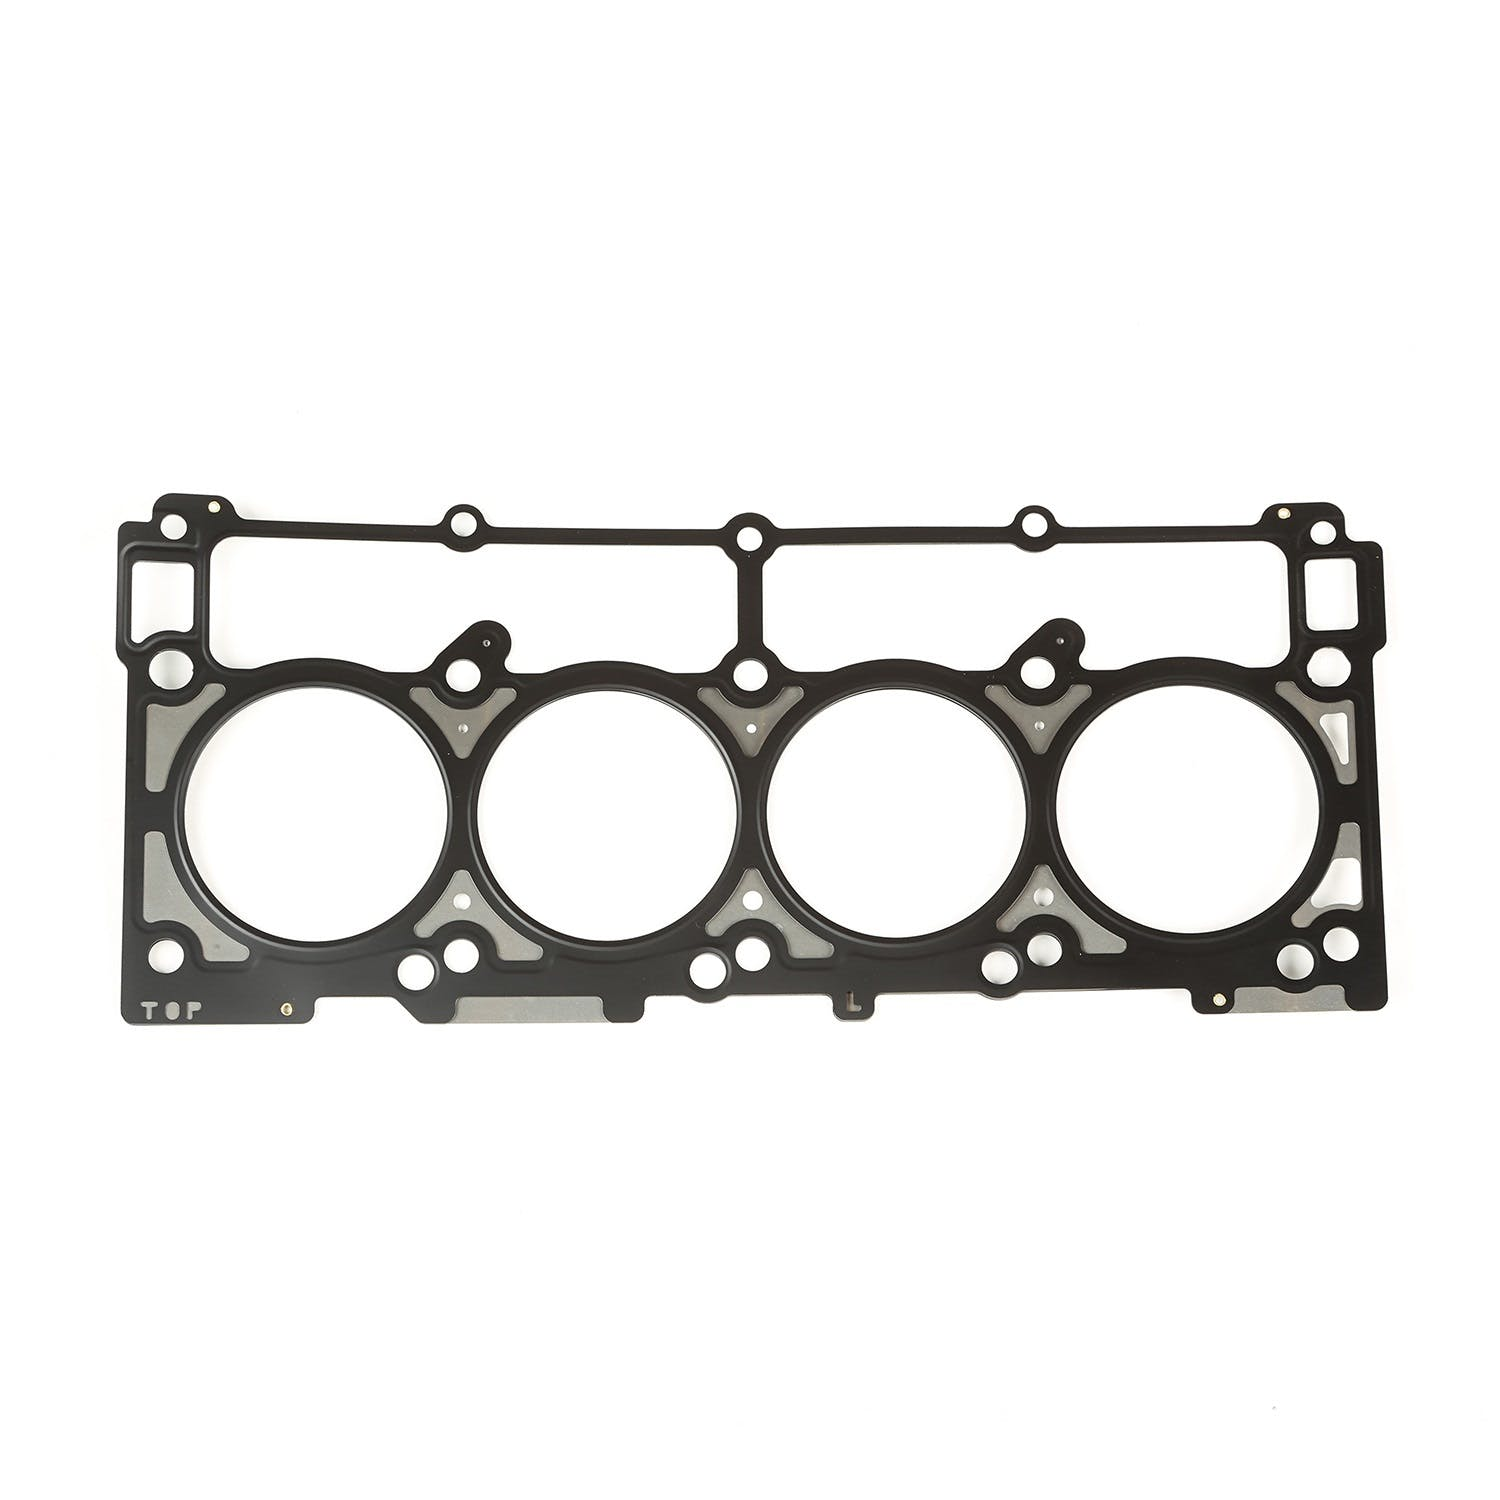 Valve Cover Gasket Pair Fits Jeep Grand Cherokee 93-98 5.2L /& 5.9L 17447.08